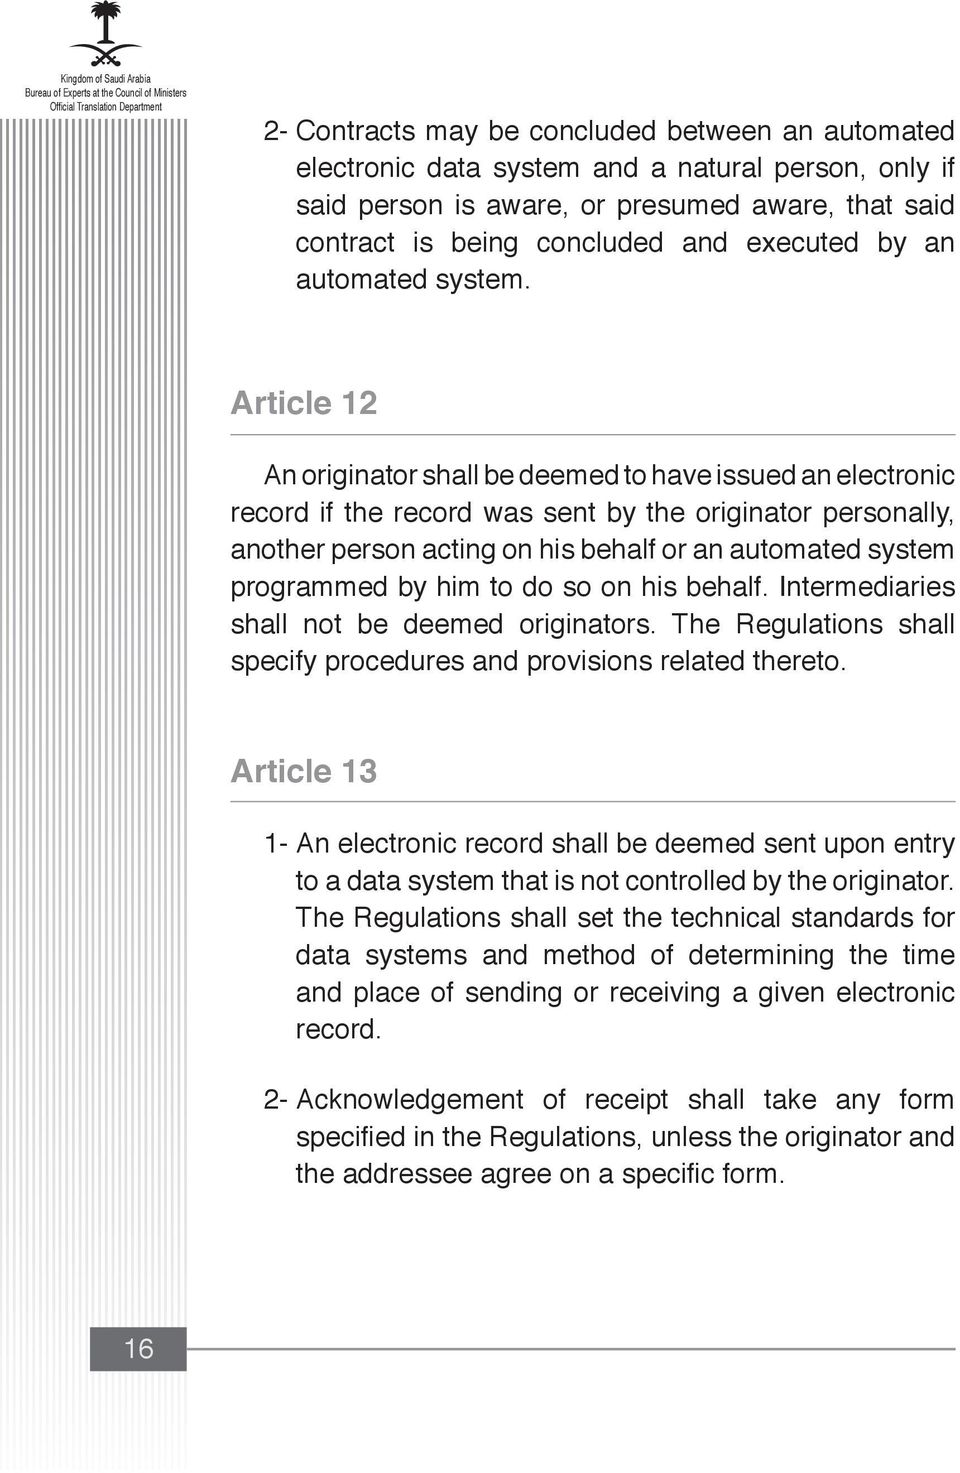 Article 12 An originator shall be deemed to have issued an electronic record if the record was sent by the originator personally, another person acting on his behalf or an automated system programmed